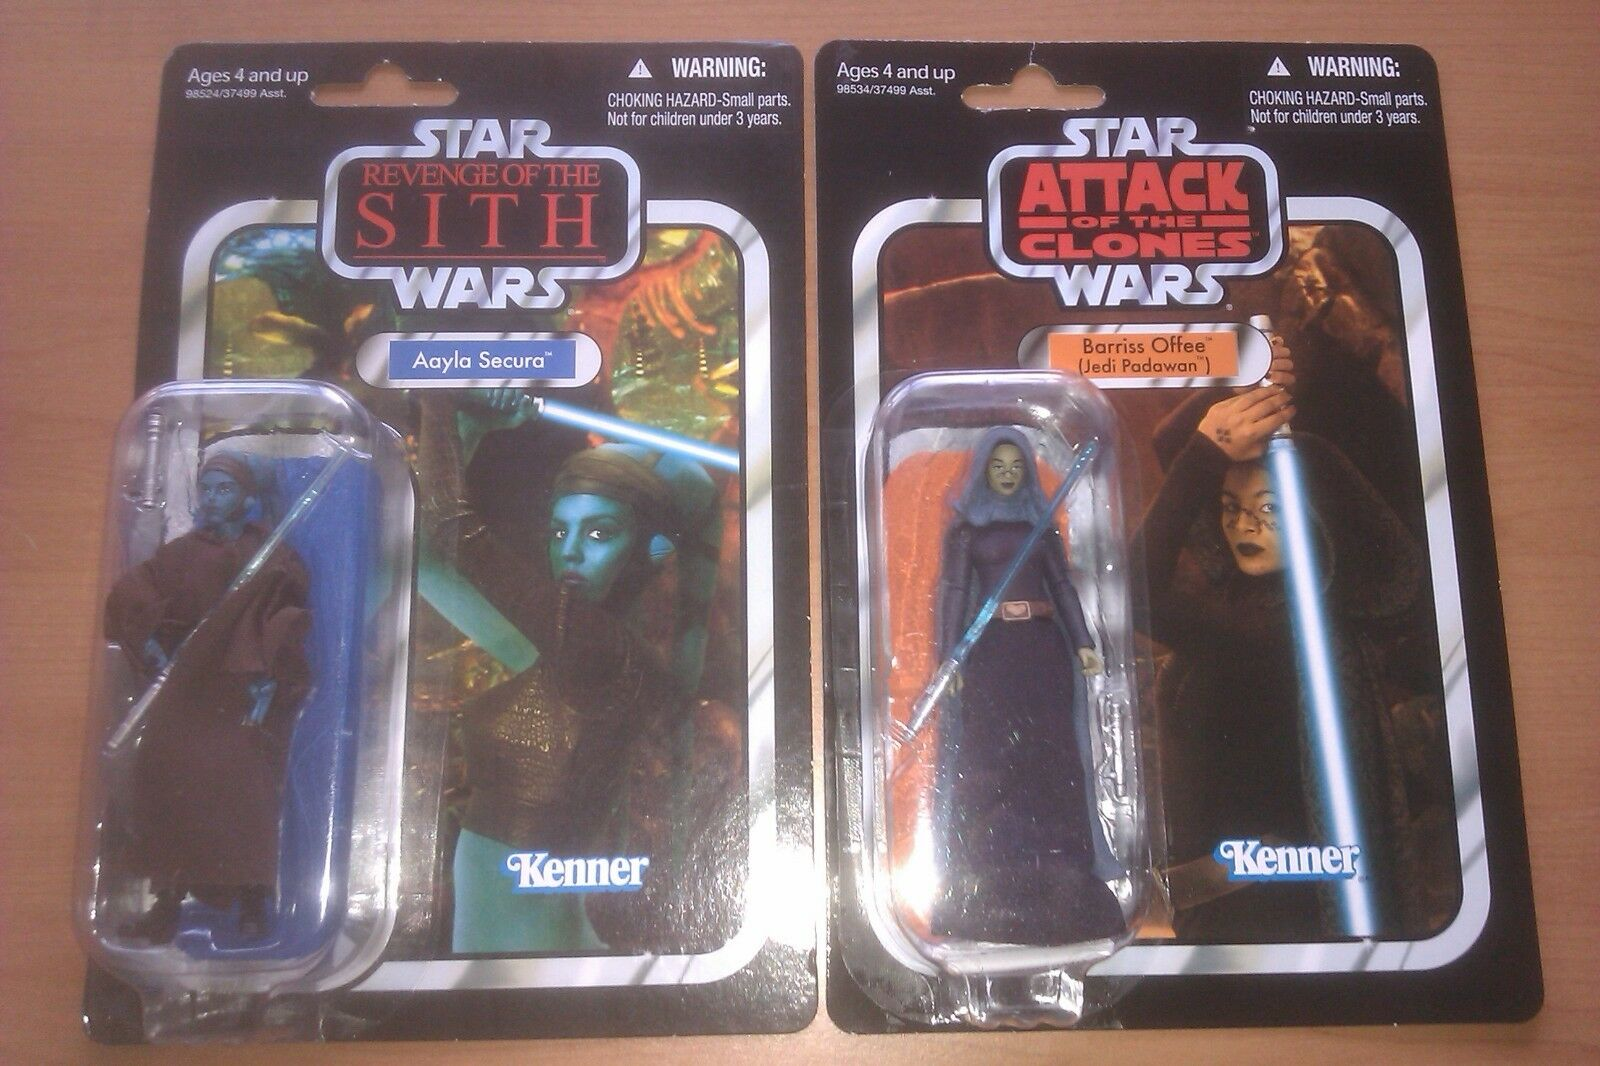 Aayla Secura & Barriss Offee Lot VC58 51 Star Wars Modern Vintage Collection